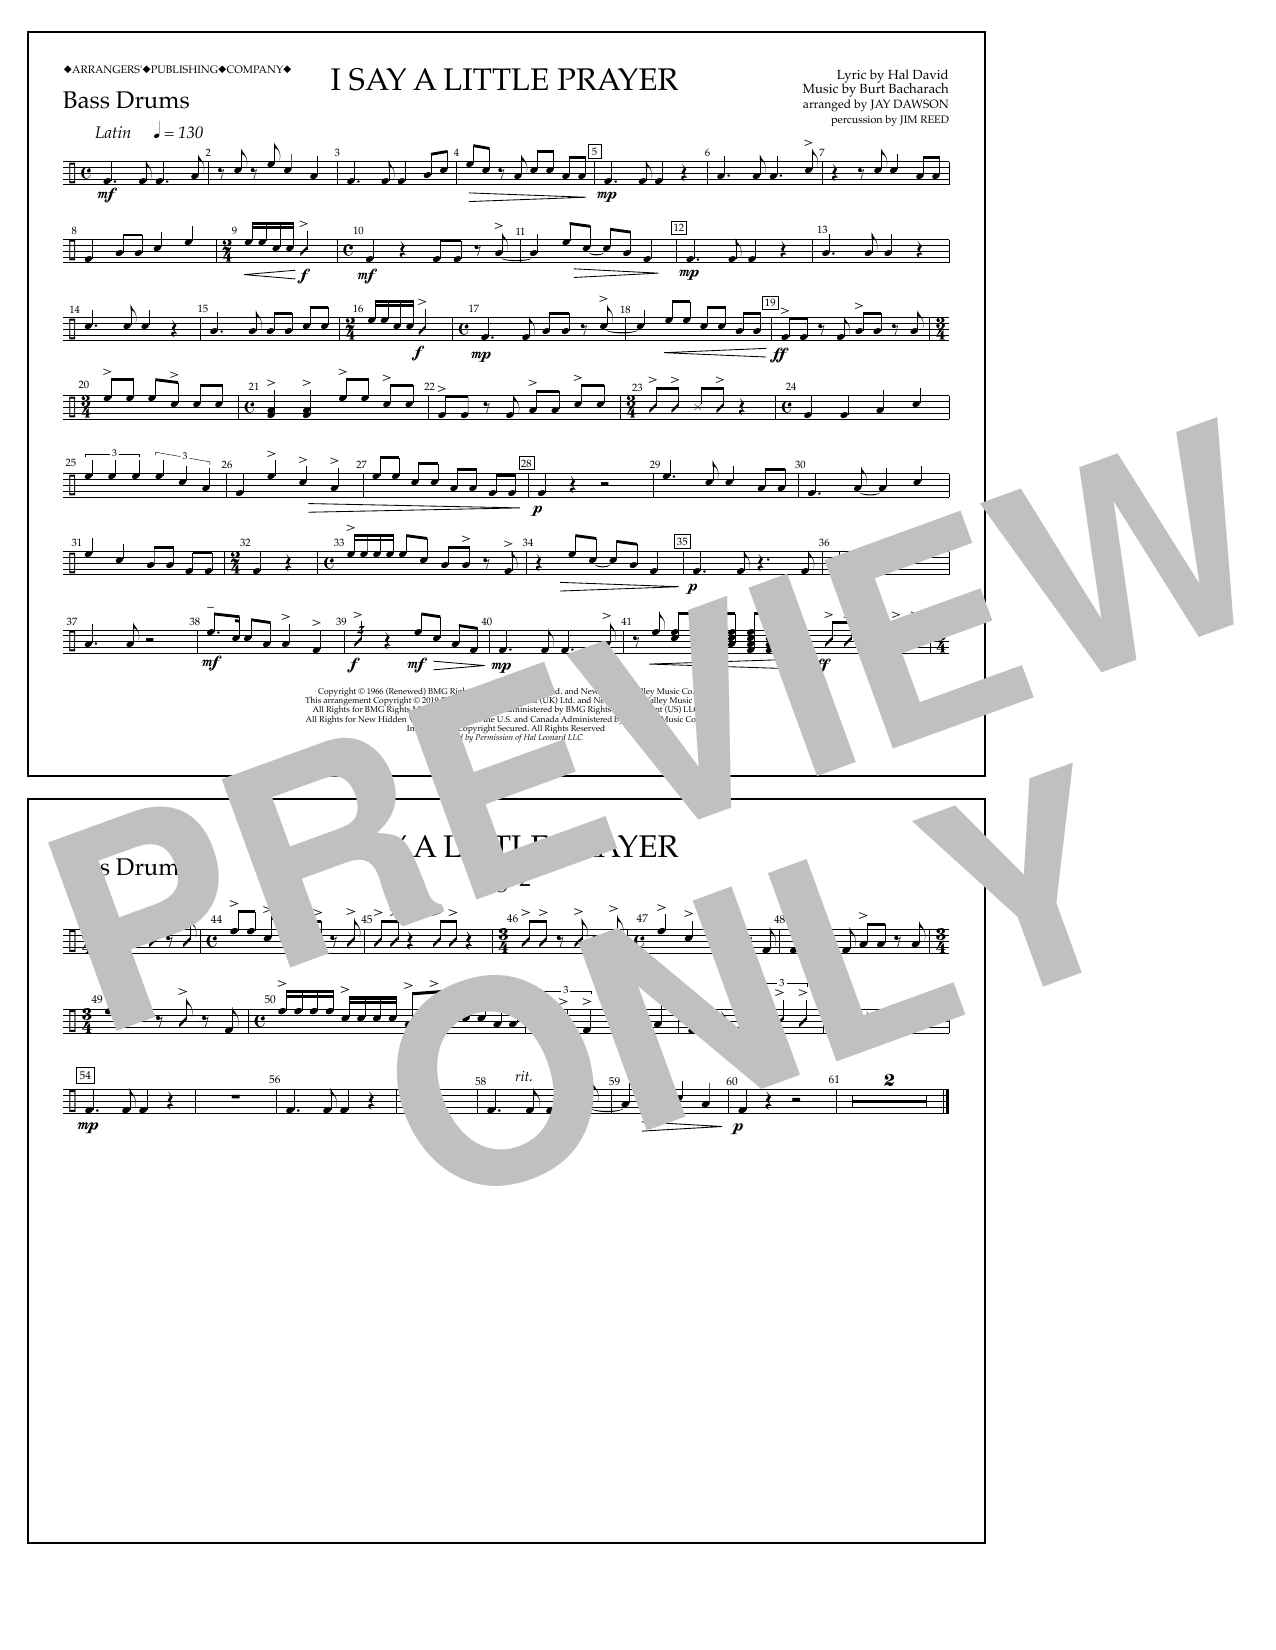 Aretha Franklin I Say a Little Prayer (arr. Jay Dawson) - Bass Drums sheet music notes and chords. Download Printable PDF.